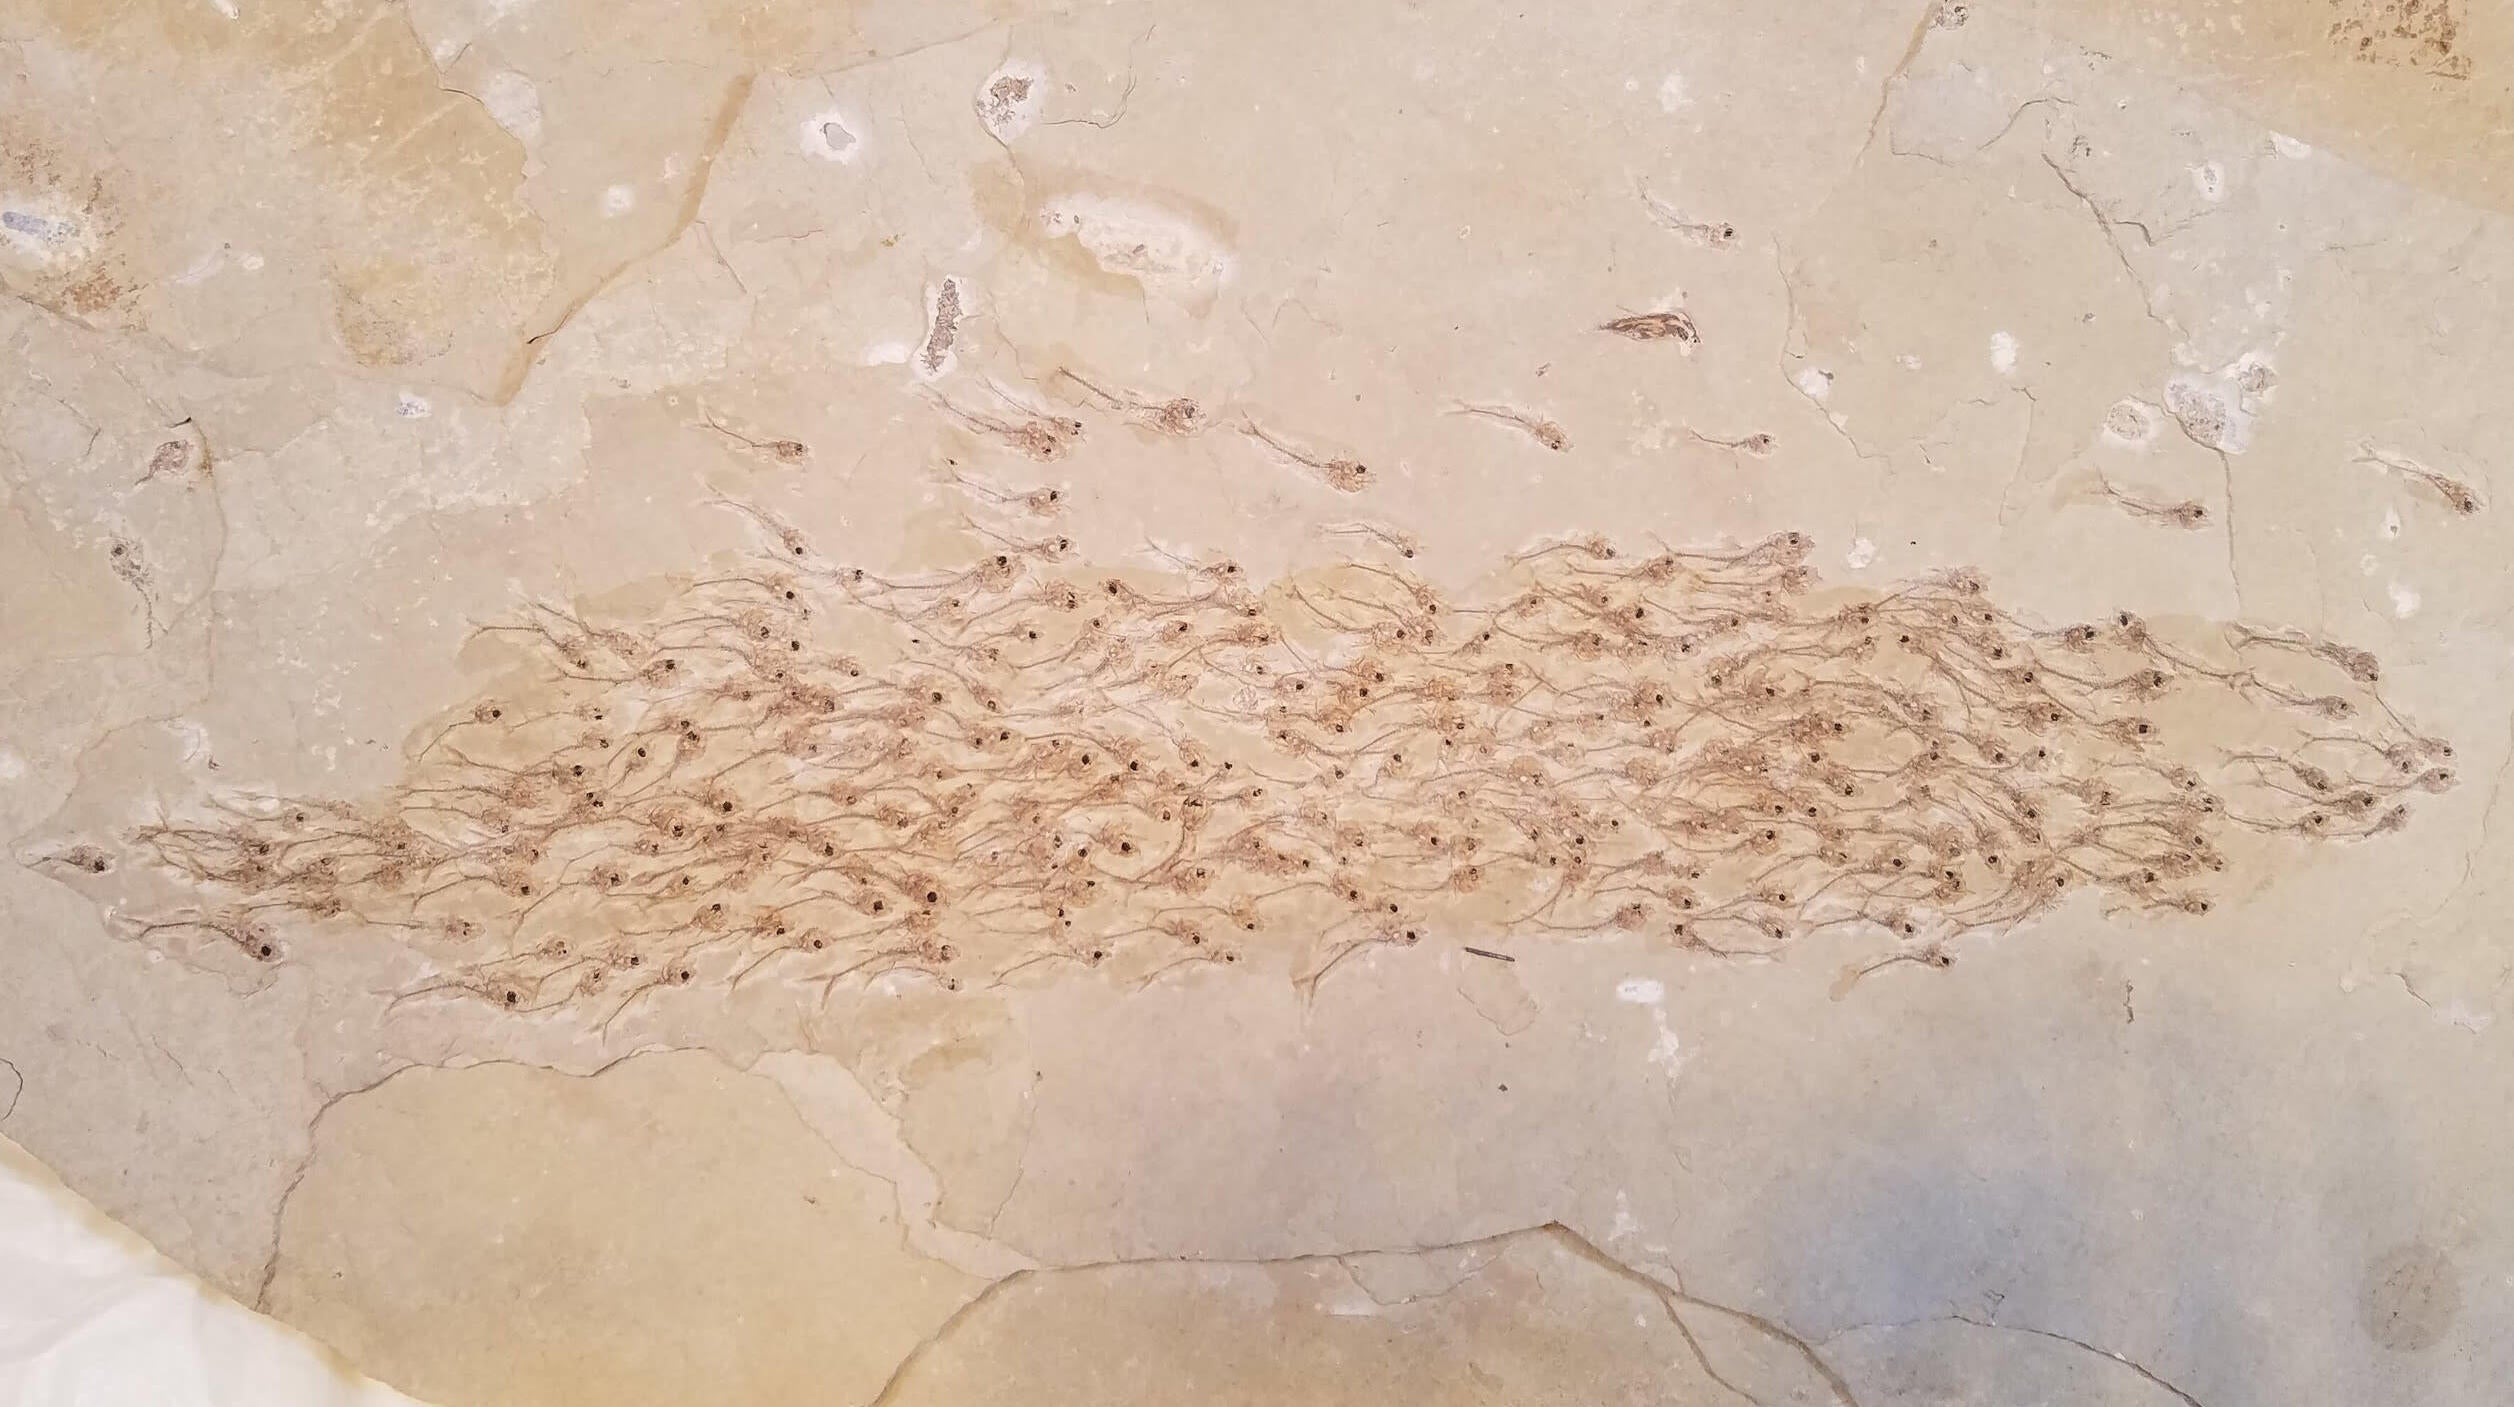 Incredible Fossil Shows Coordinated Swimming In A School Of Extinct Fish